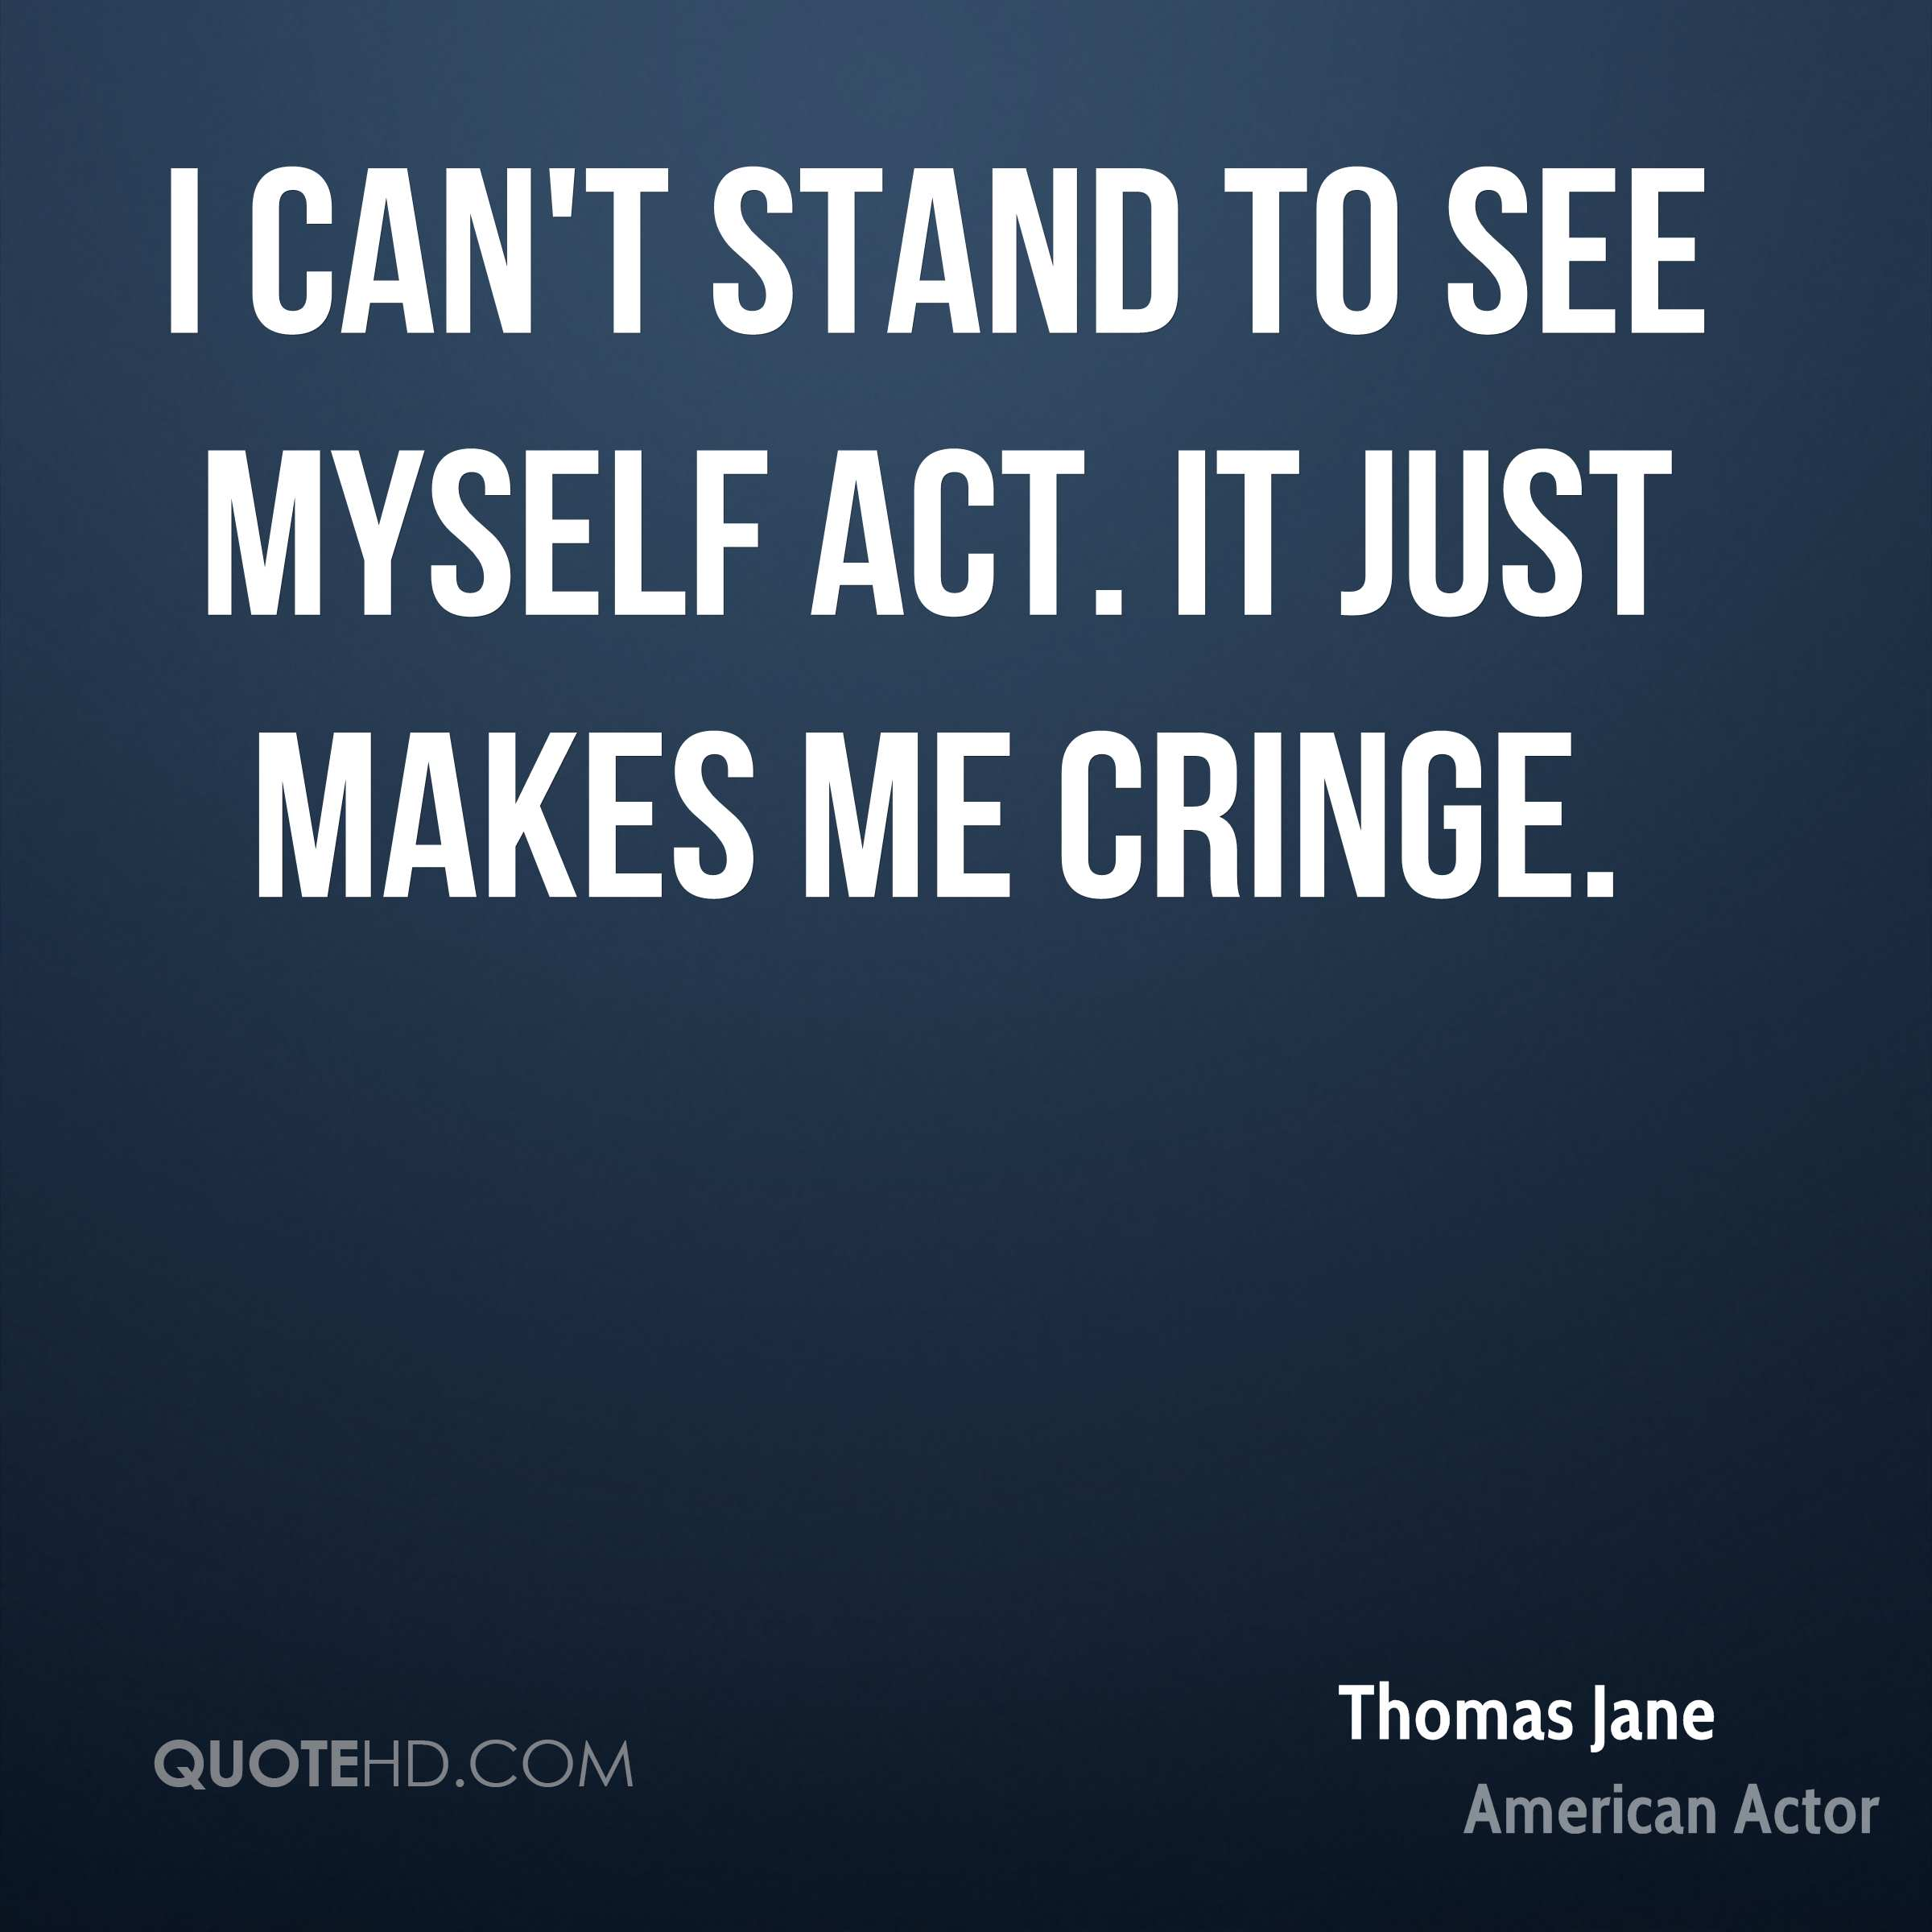 I can't stand to see myself act. It just makes me cringe.